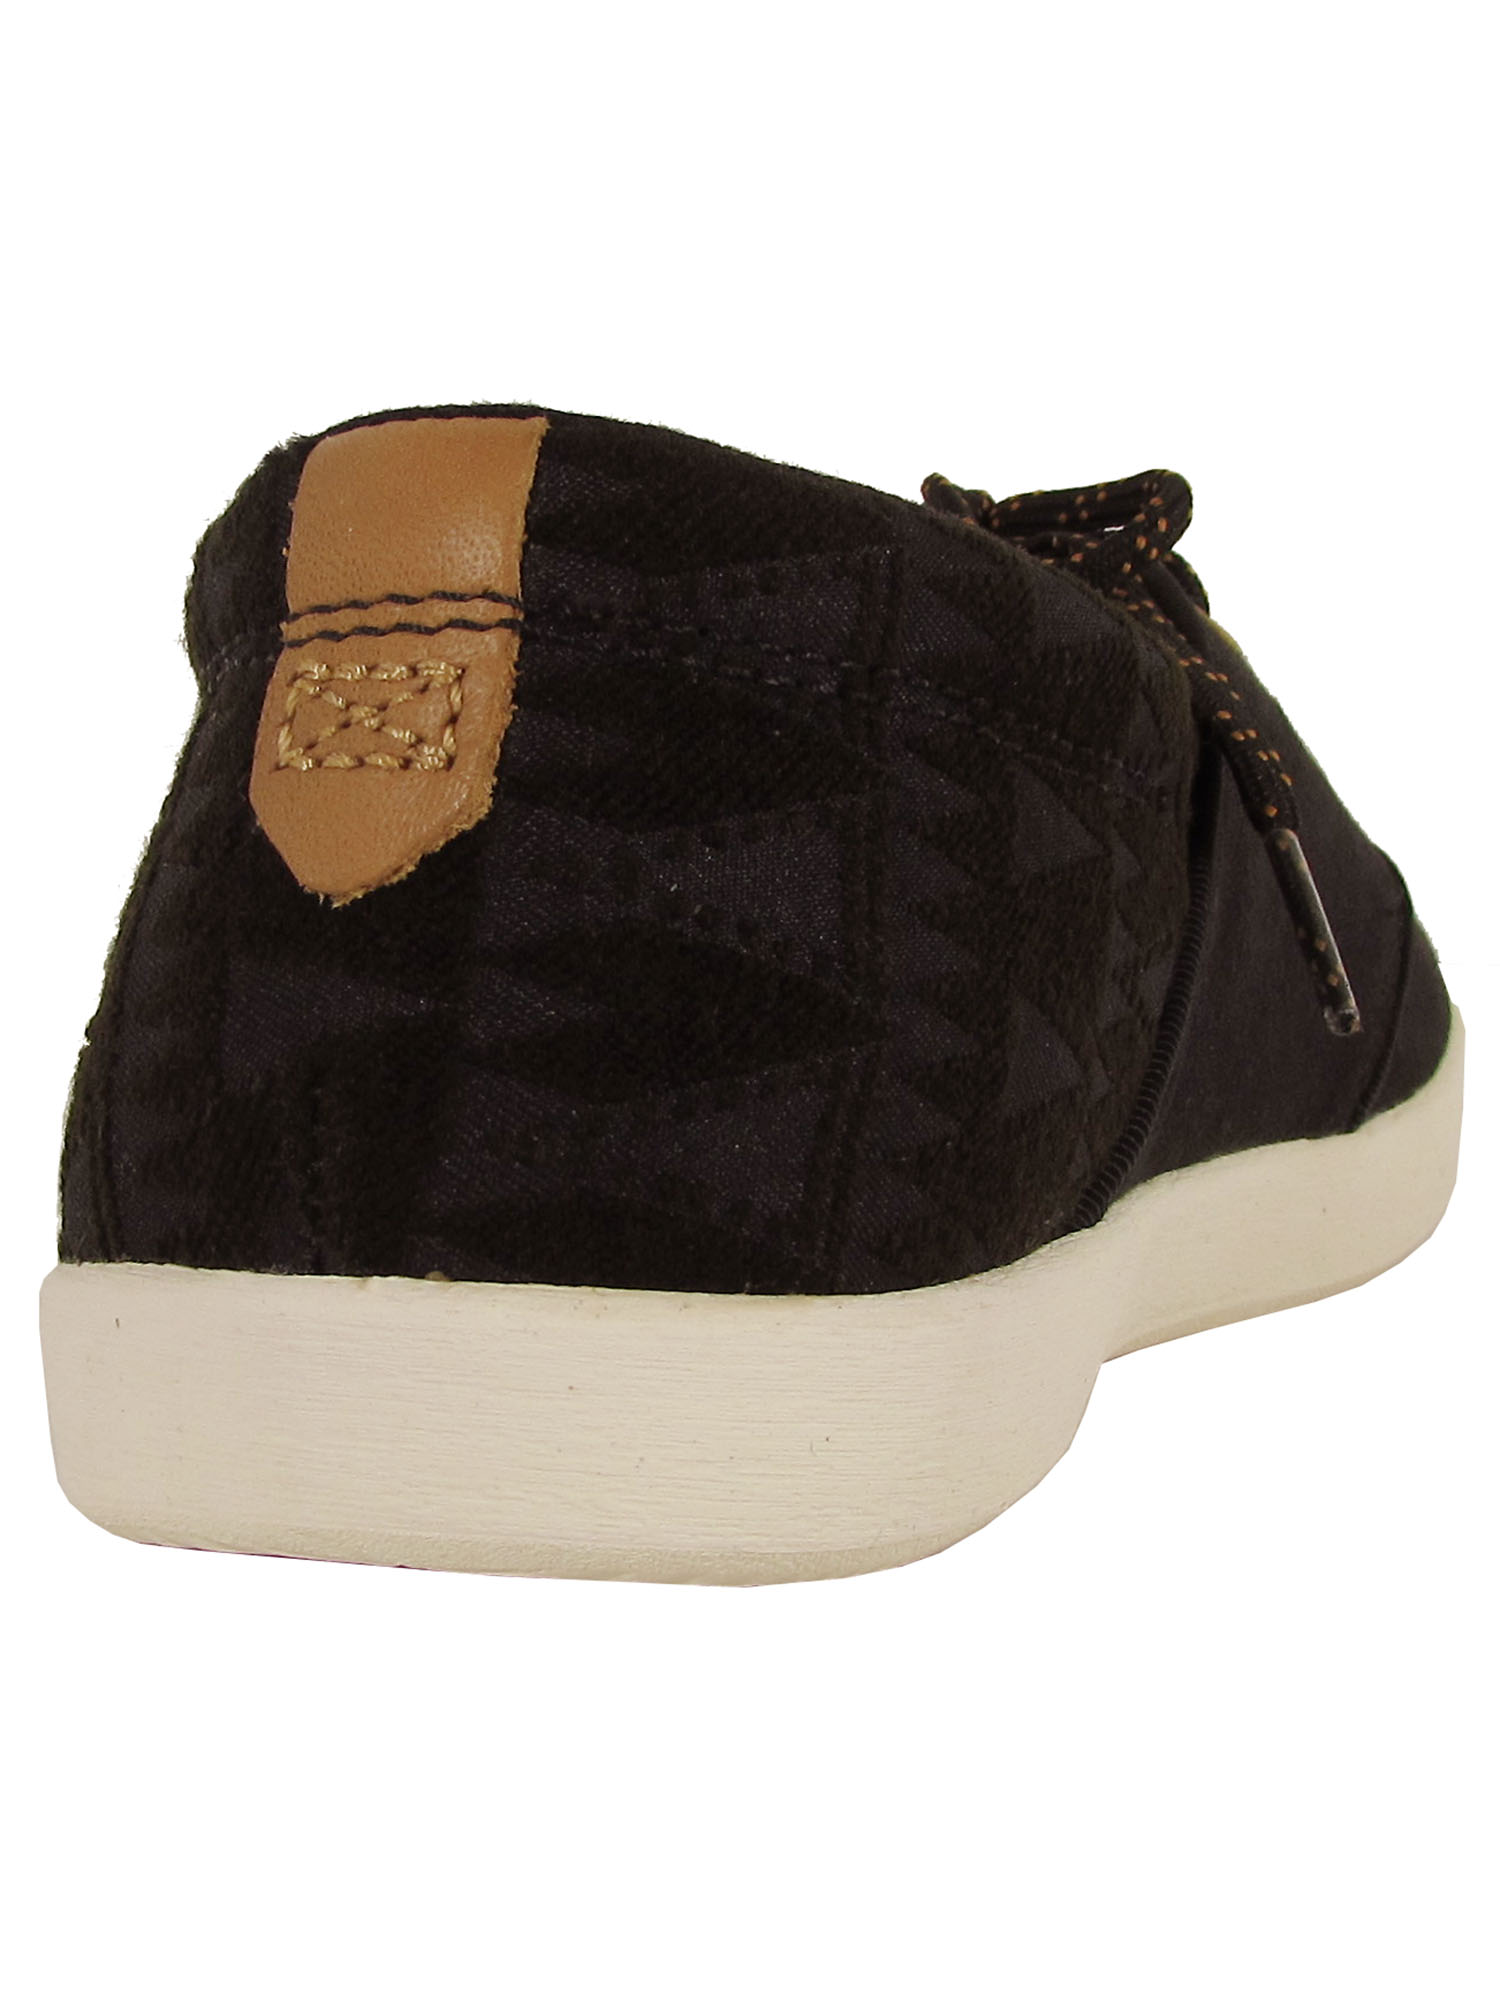 Teva-Womens-Willow-Lace-Up-Sneaker-Shoes thumbnail 4